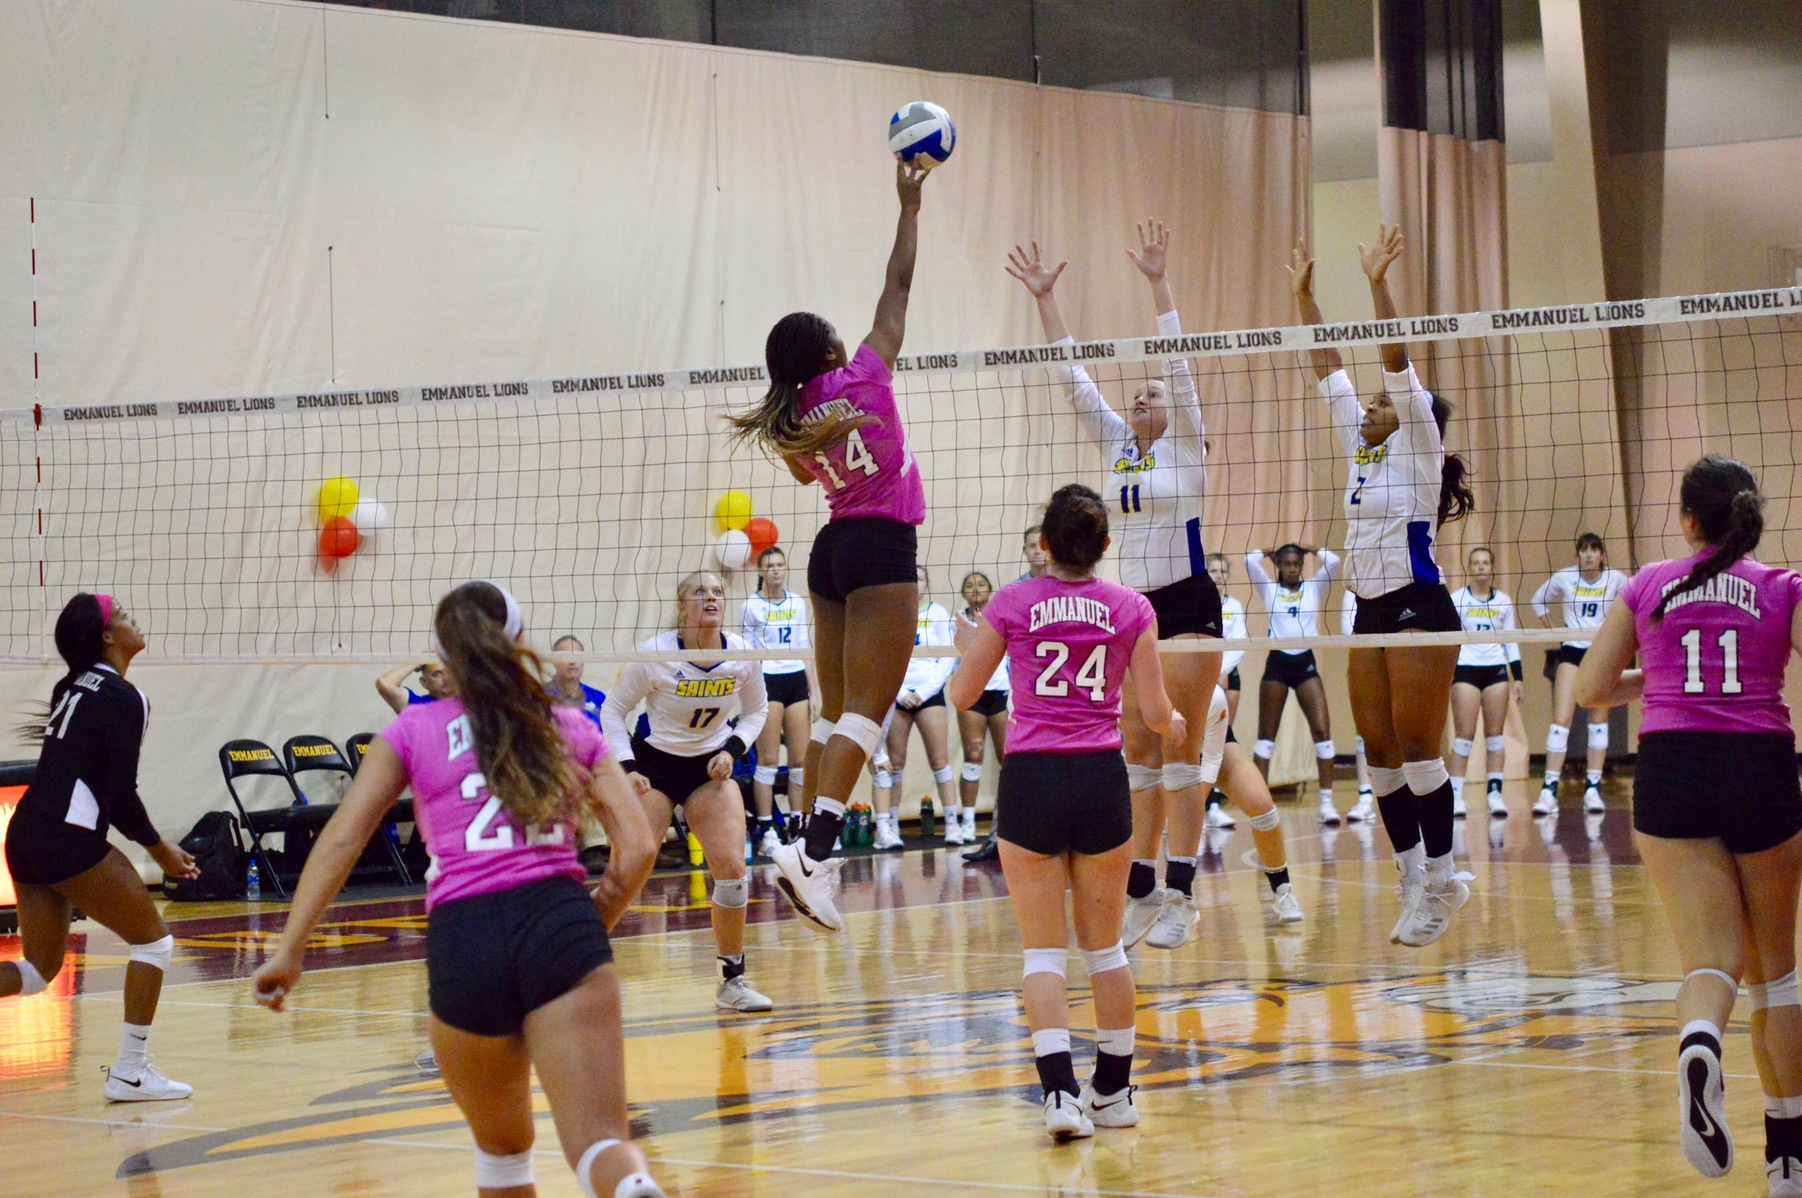 Women's Volleyball Continues Longest Winning Streak in Program History